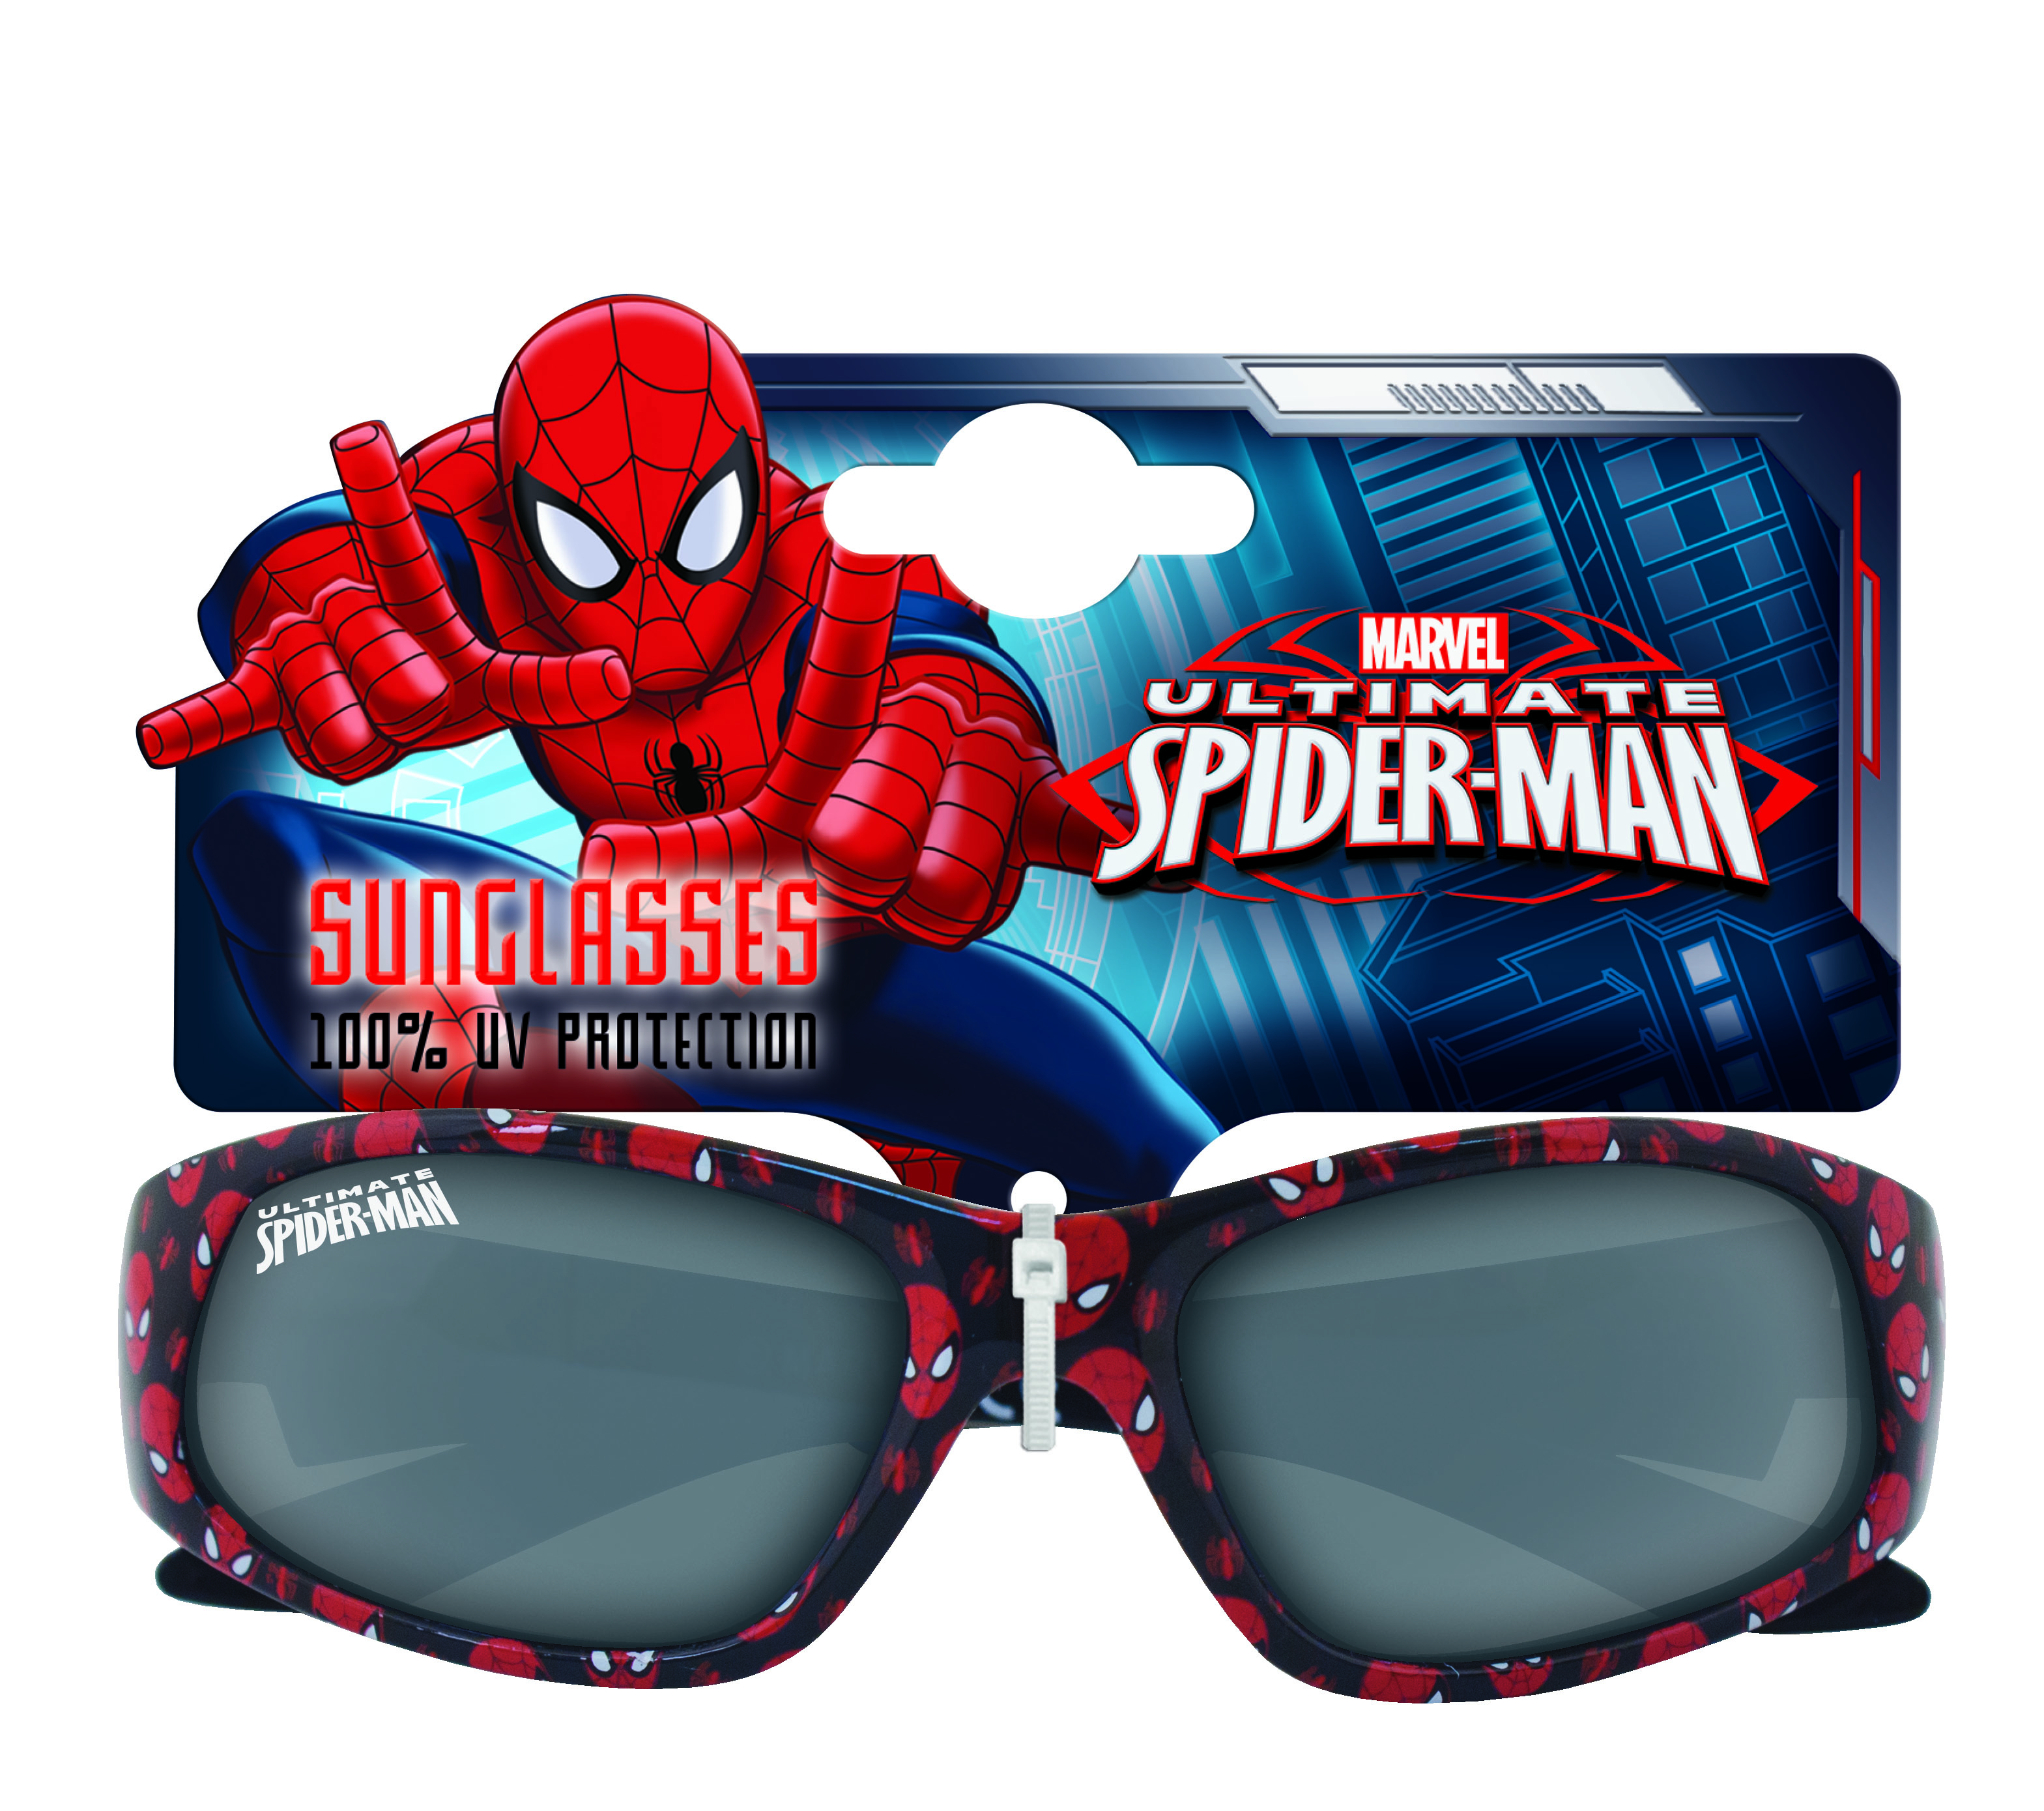 Occhiali da SOLE per Bimbo - MARVEL  SPIDERMAN a